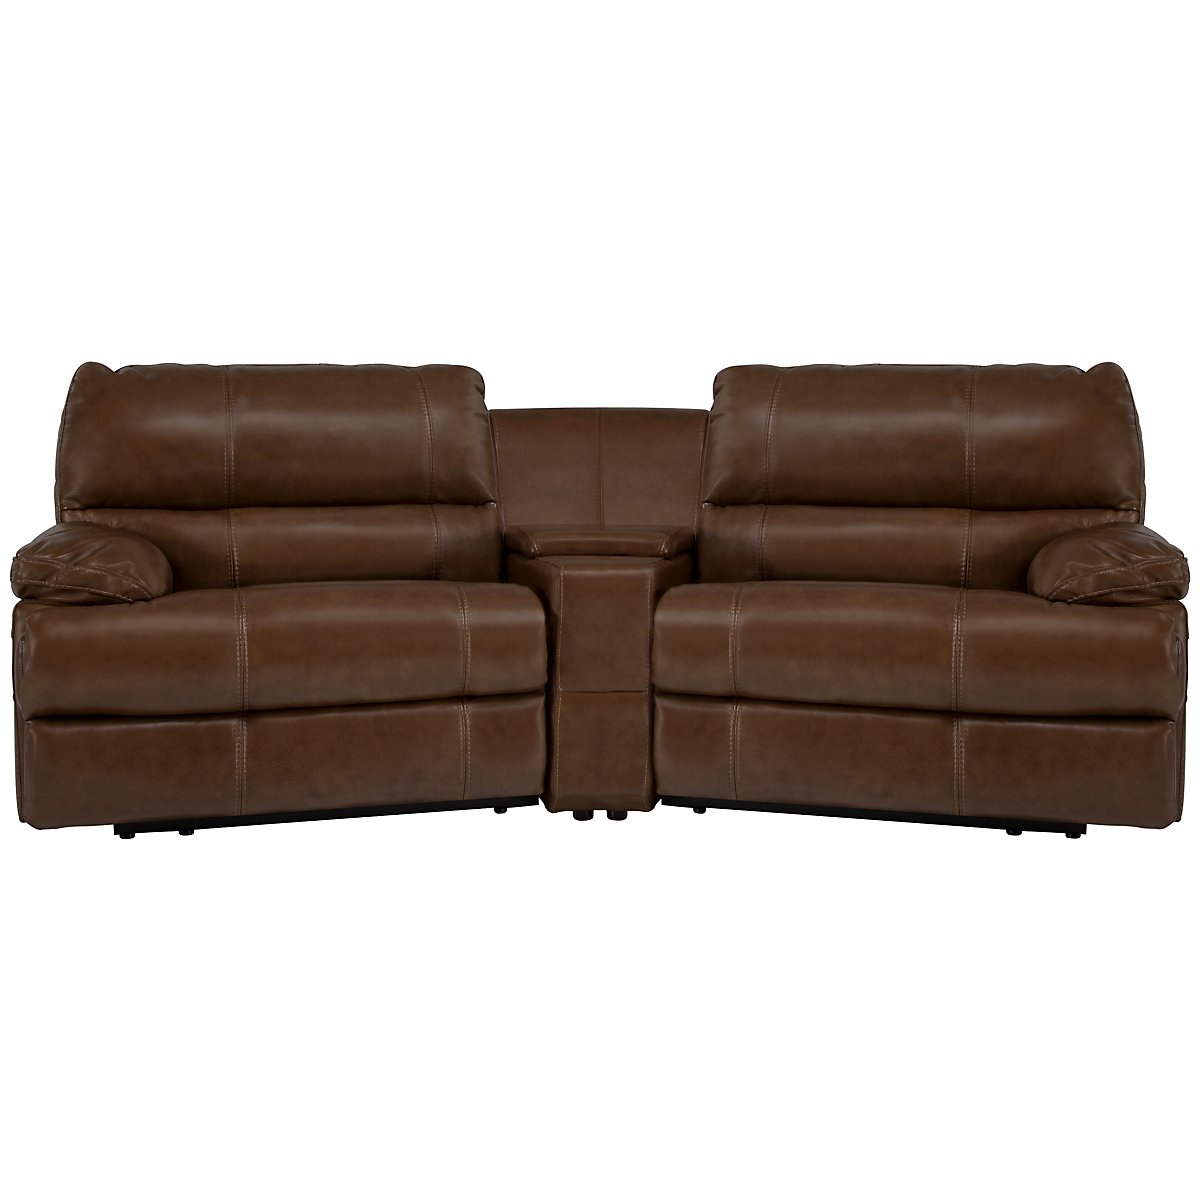 Alton2 Medium Brown Leather & Vinyl Small Manually Reclining Home Theater Sectional